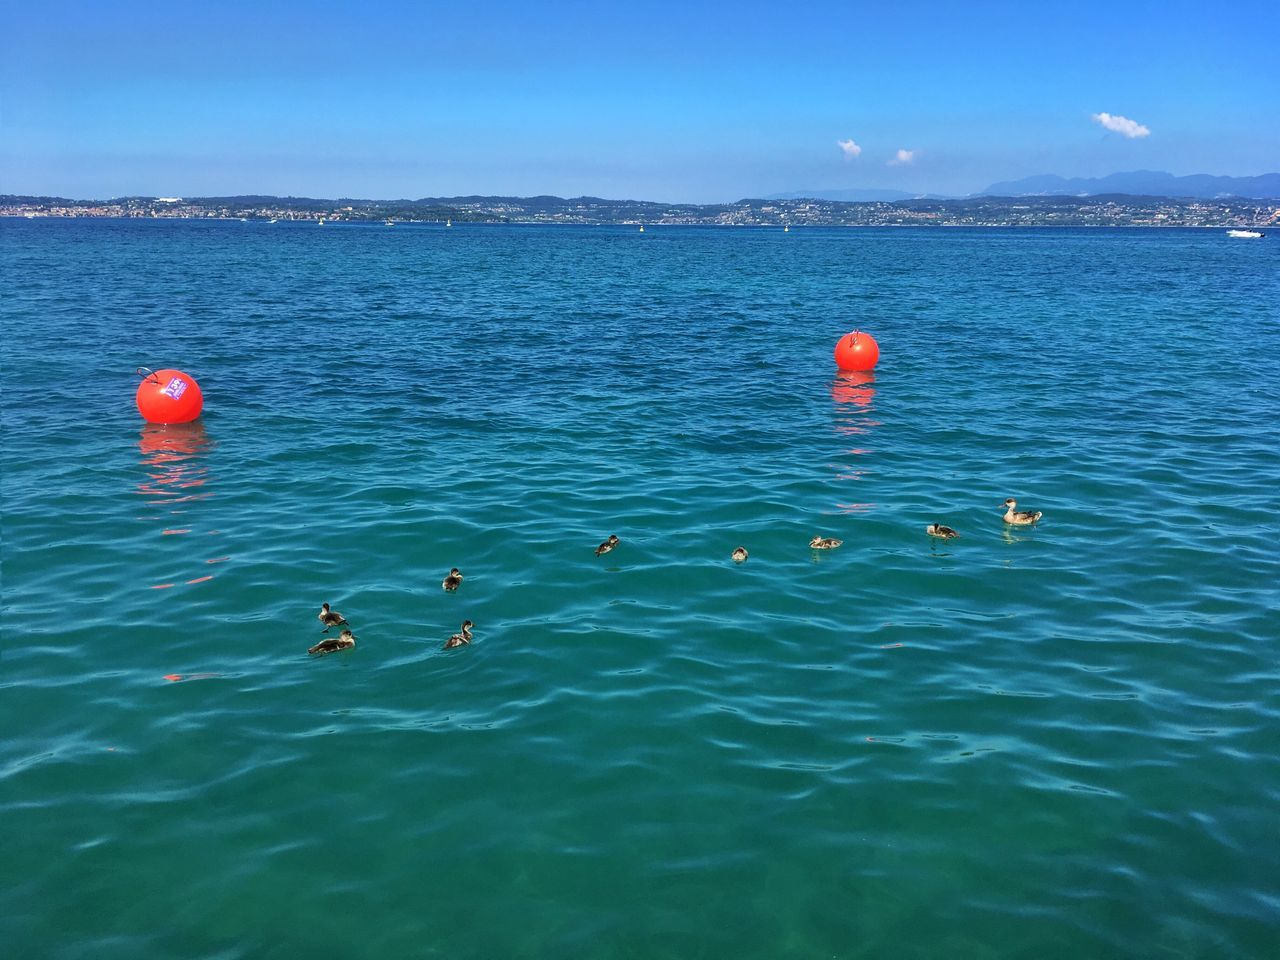 water, buoy, nature, animals in the wild, sea, beauty in nature, waterfront, bird, floating on water, blue, day, outdoors, animal themes, no people, scenics, animal wildlife, flying, sky, swimming, flamingo, swan